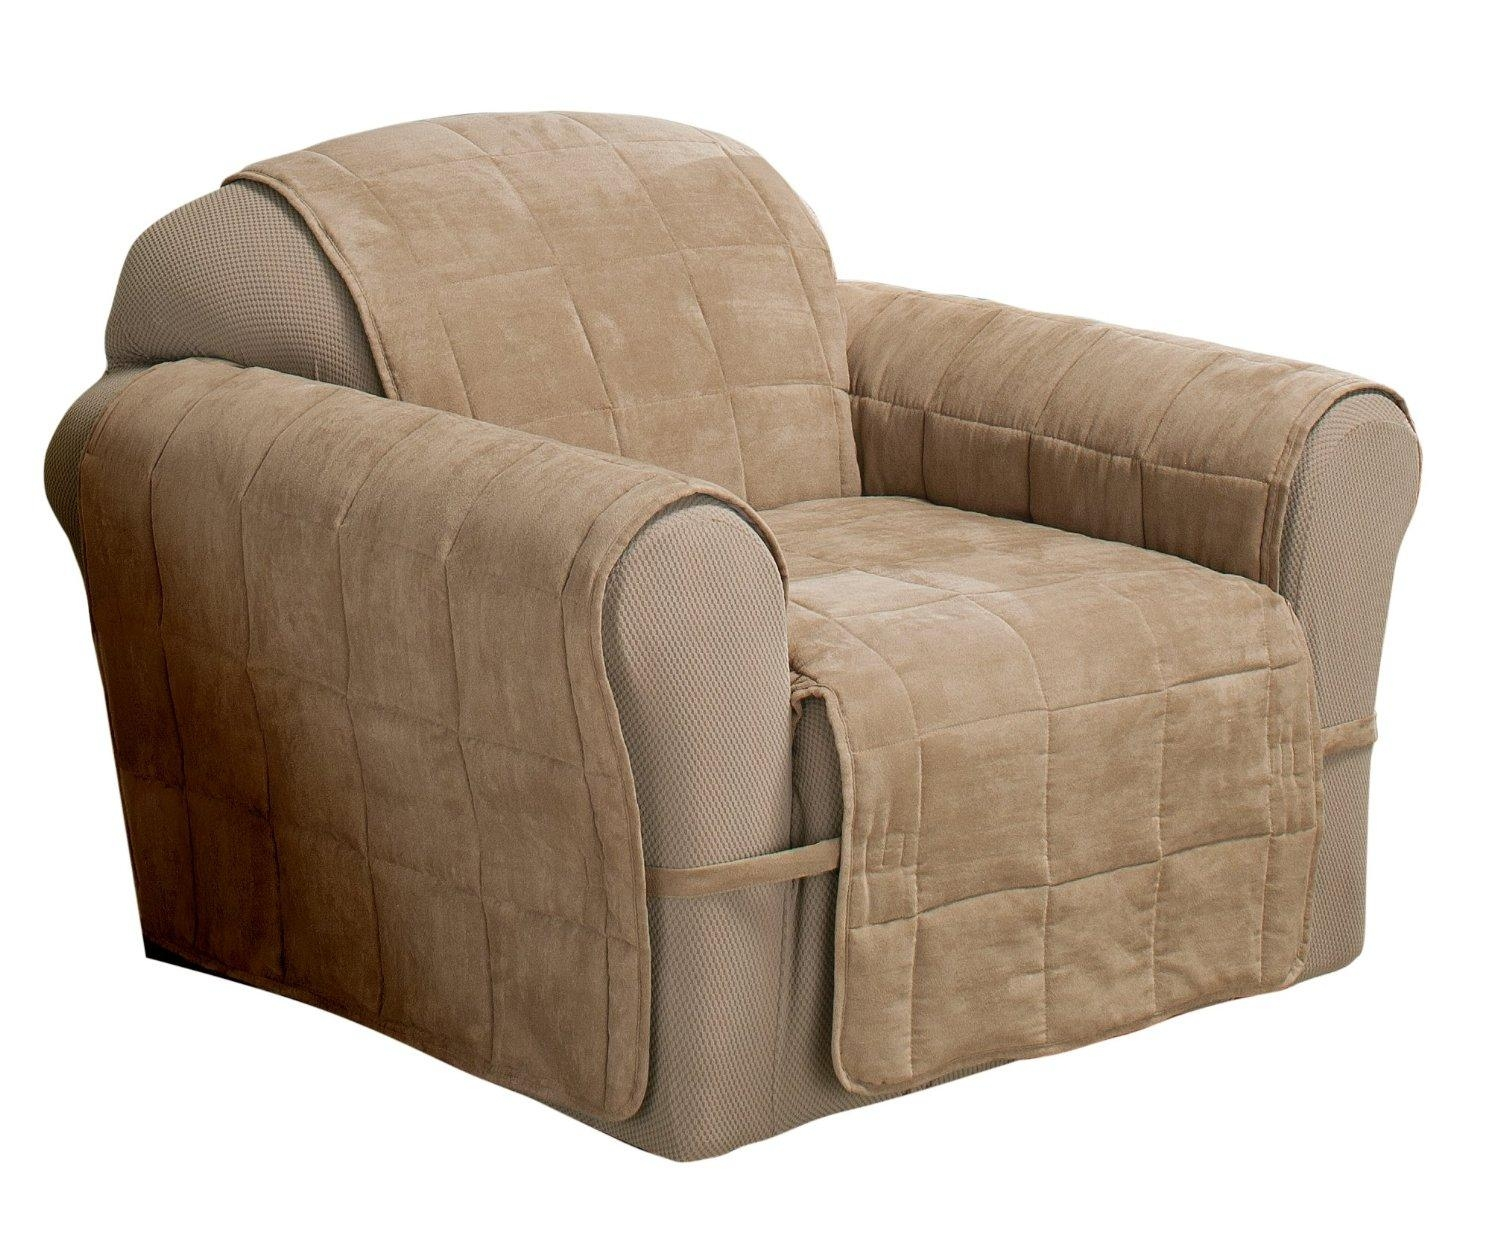 Sofas Center : J172 001 2 Faux Suede Pet Furniture Covers For Regarding Covers For Sofas And Chairs (View 3 of 20)